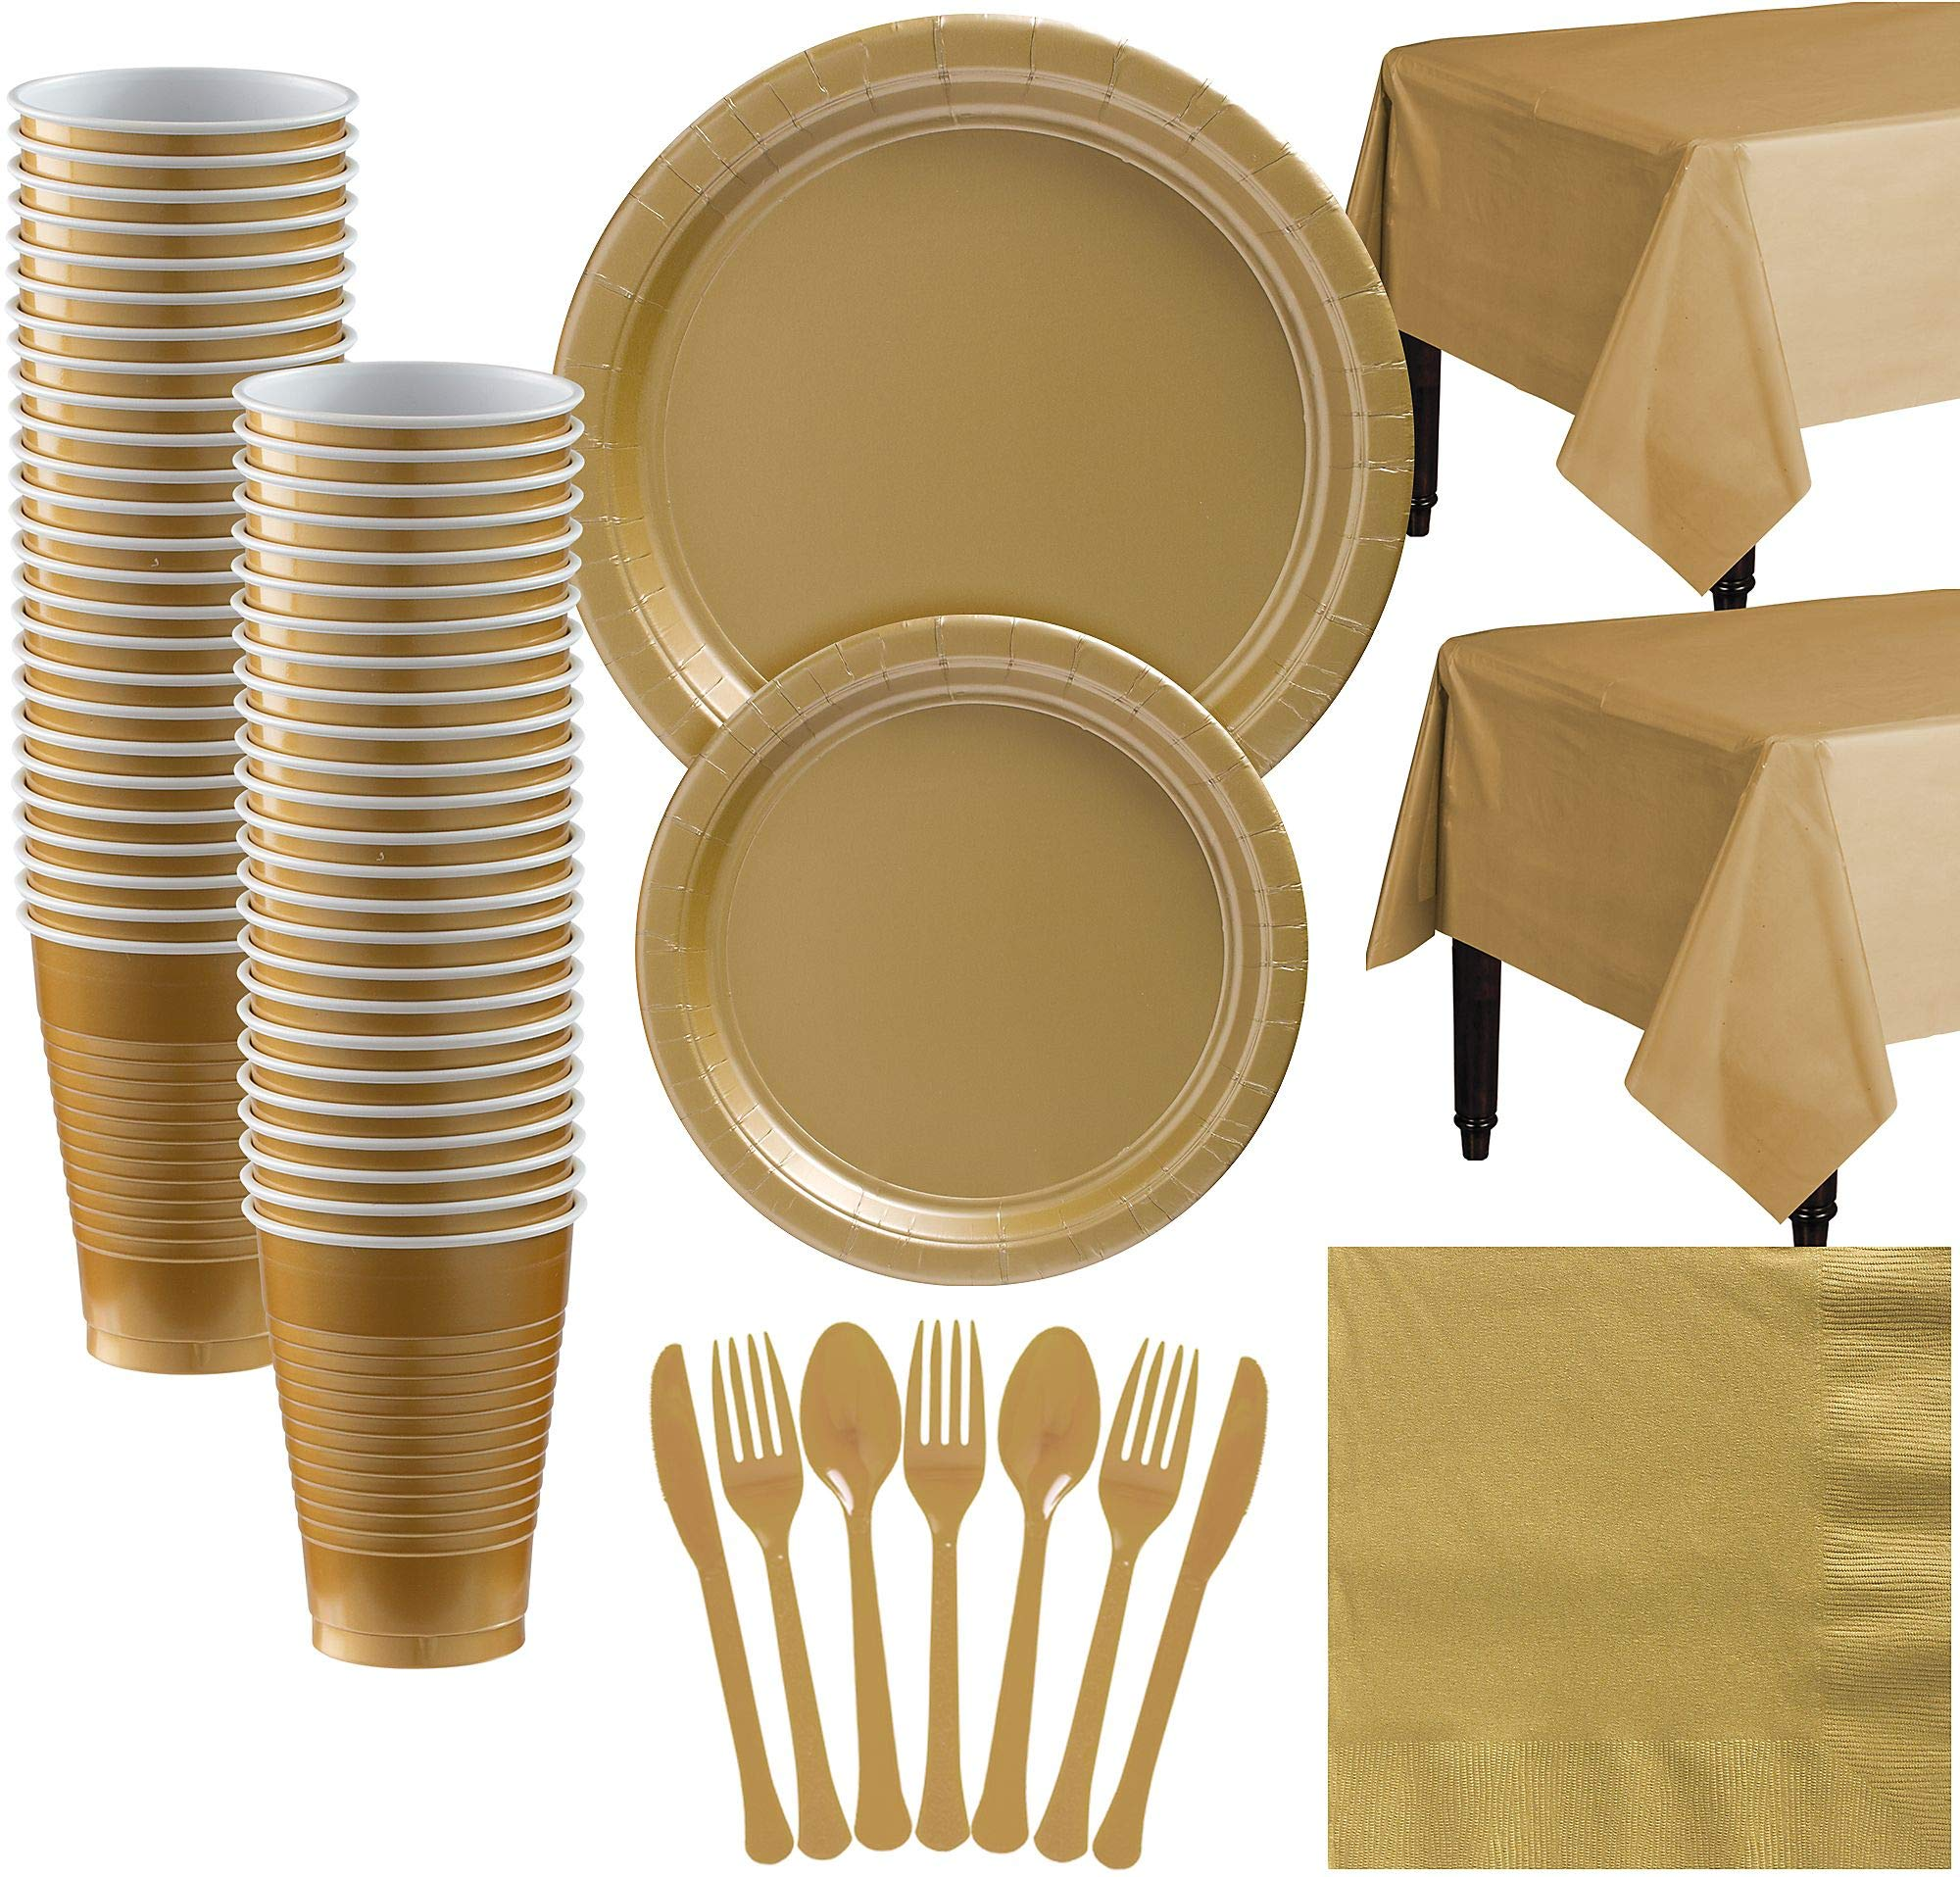 Amscan Gold Paper Tableware Kit for 50 Guests, Party Supplies Set, Includes Plates, Cups, Table Covers and More